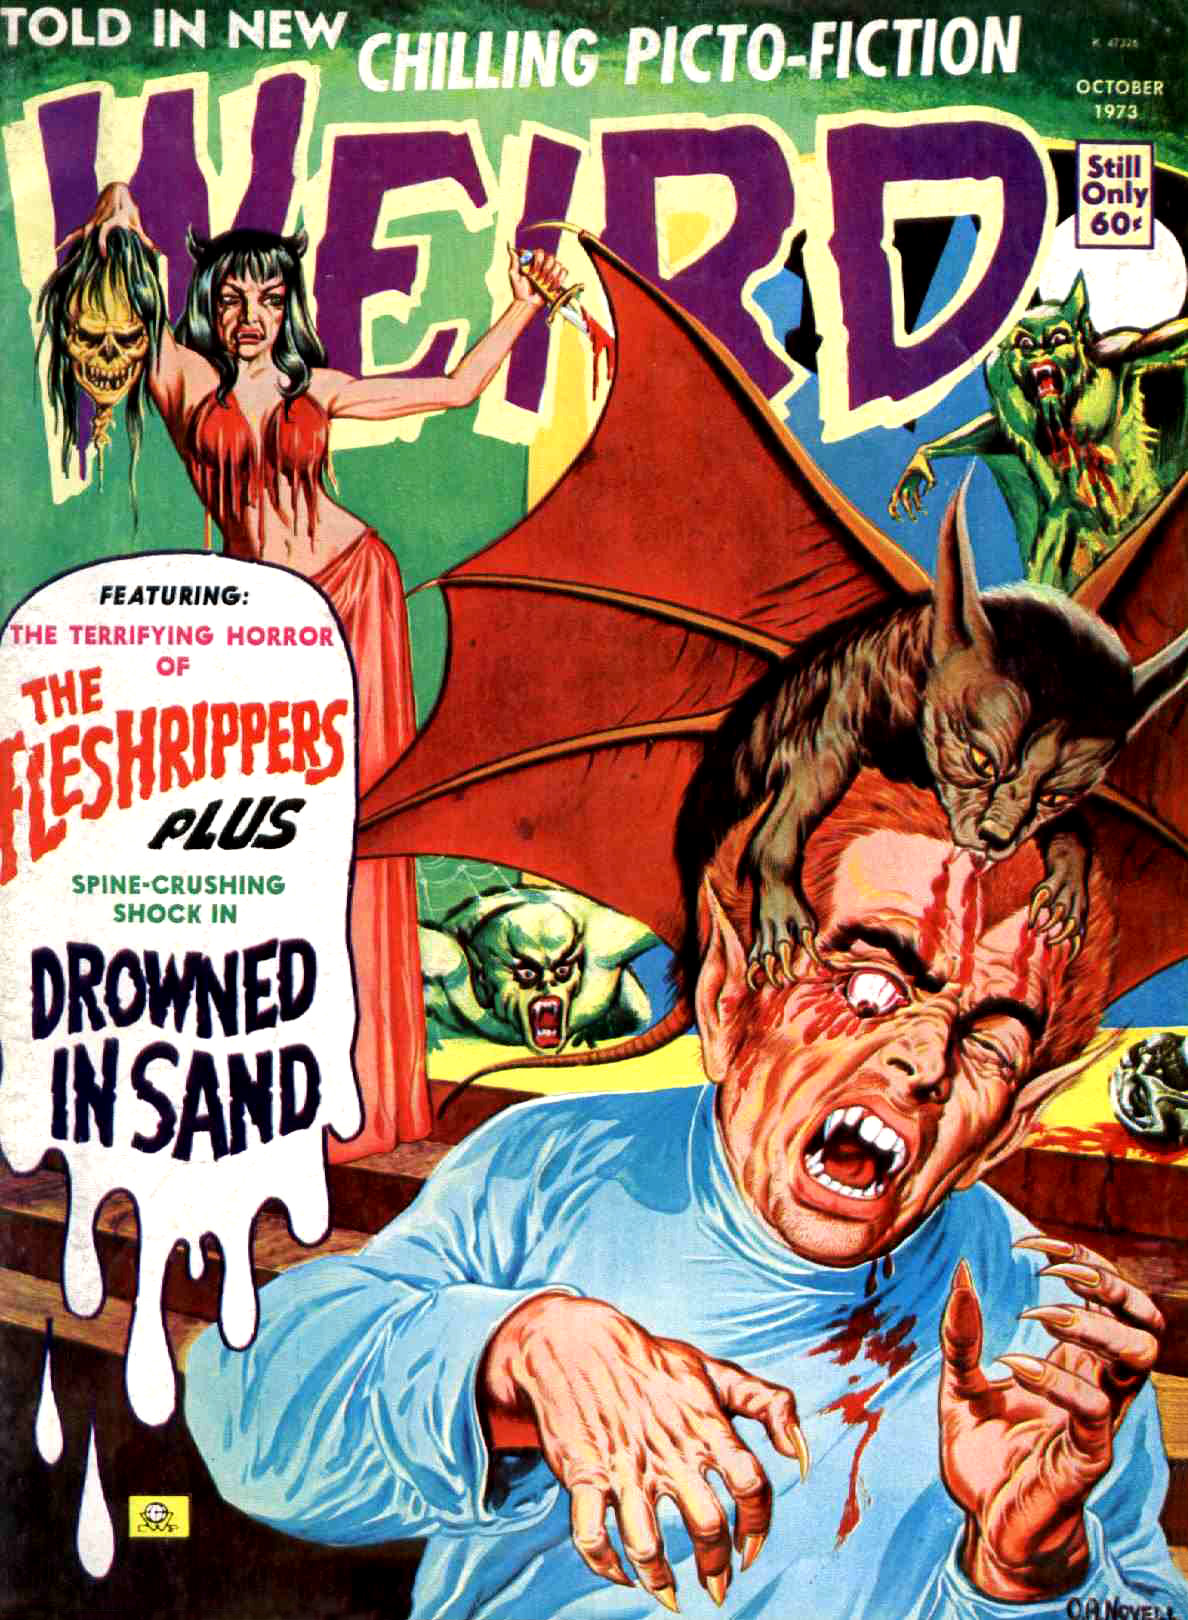 Weird Vol. 07 #6 (Eerie Publications, 1973)